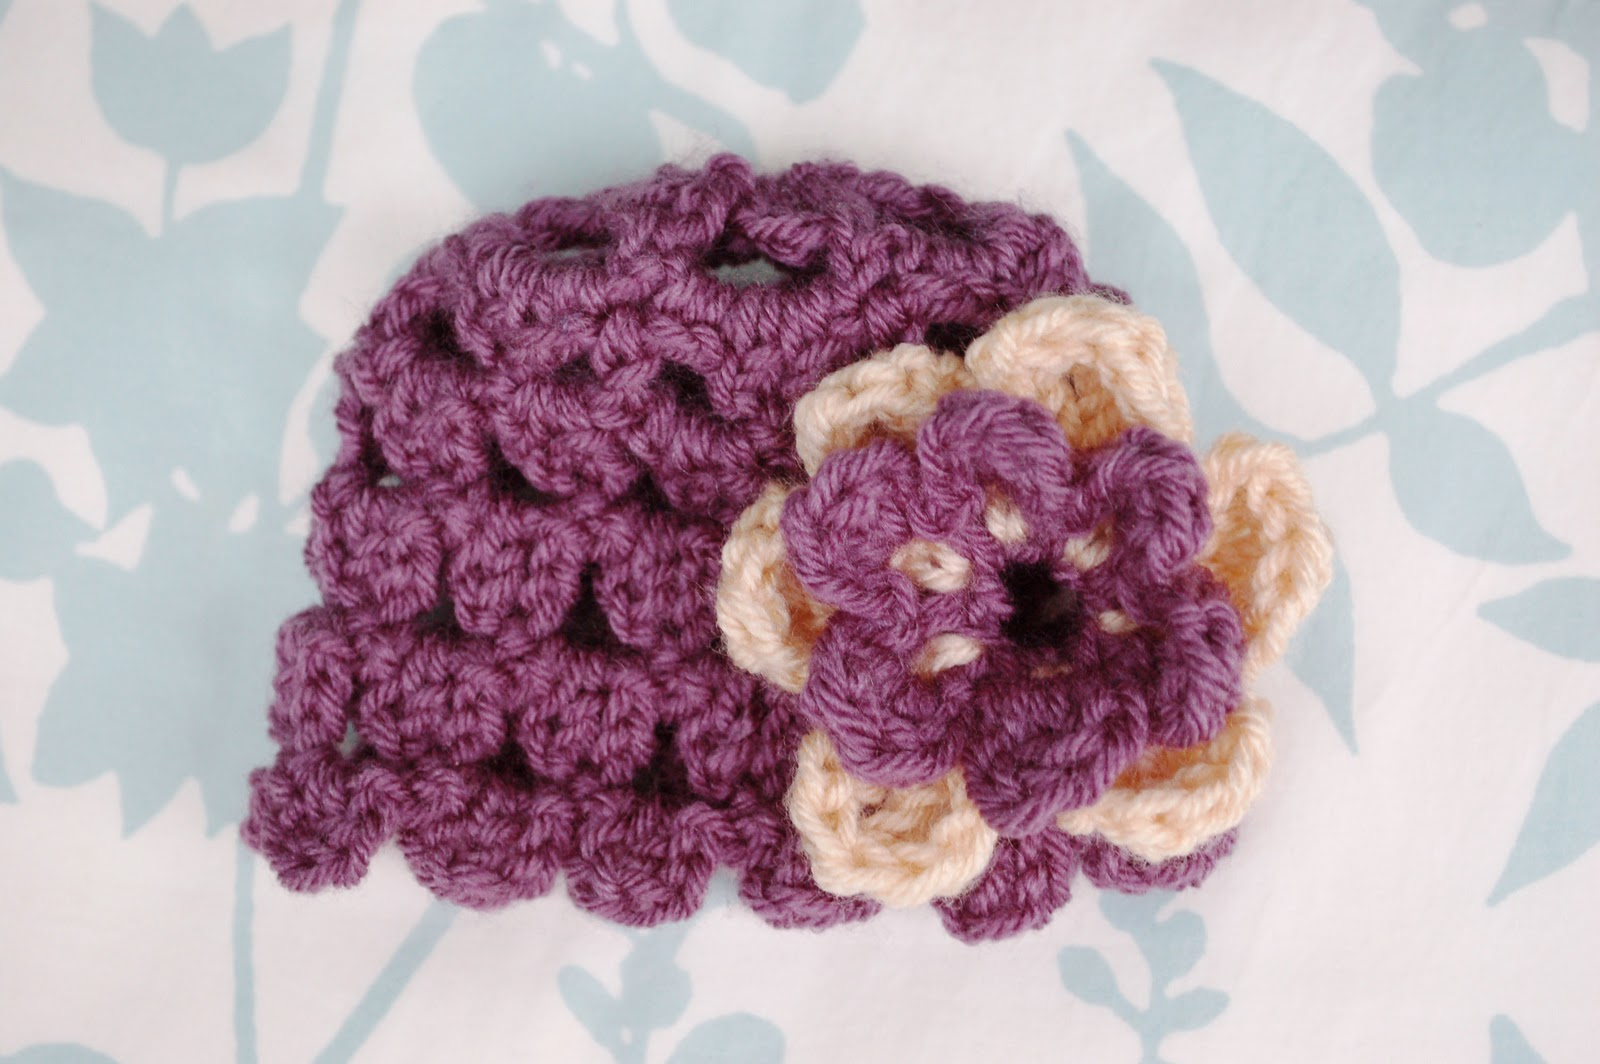 Free Crochet Flower Patterns For Baby Hats : Alli Crafts: Free Pattern: Petals Newborn Hat